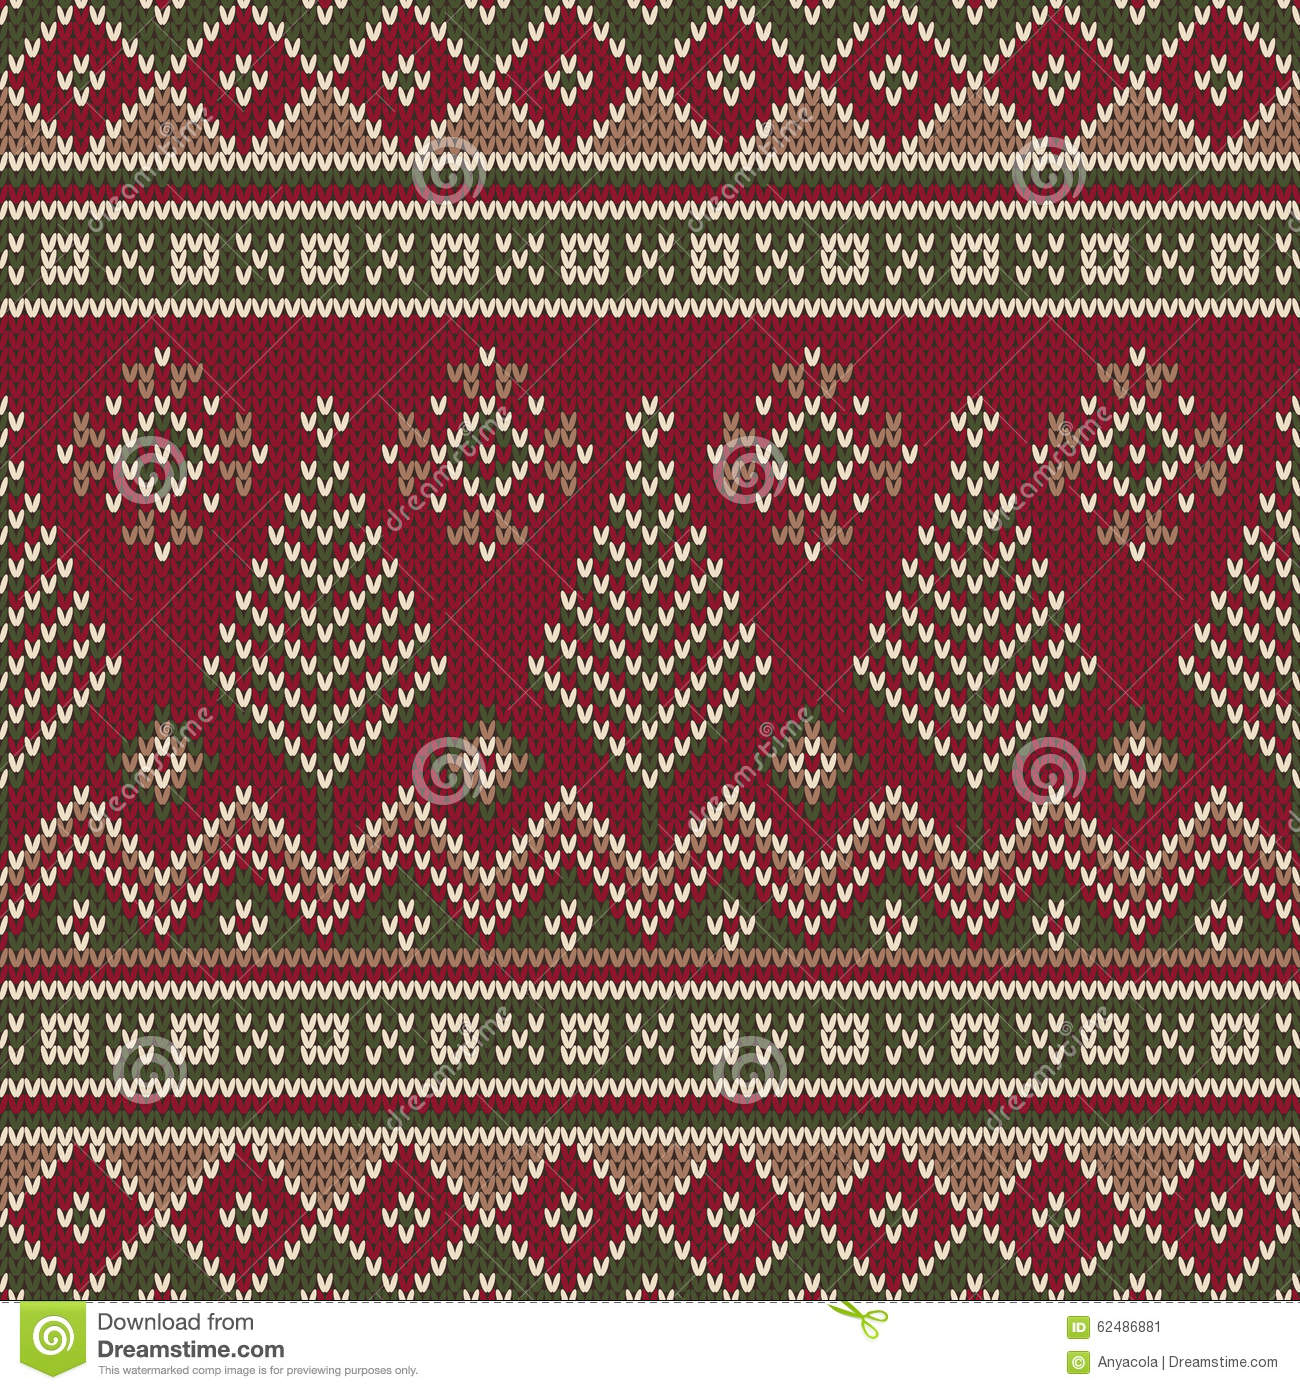 Traditional Christmas Sweater Design. Seamless Knitting Pattern Stock Vector ...